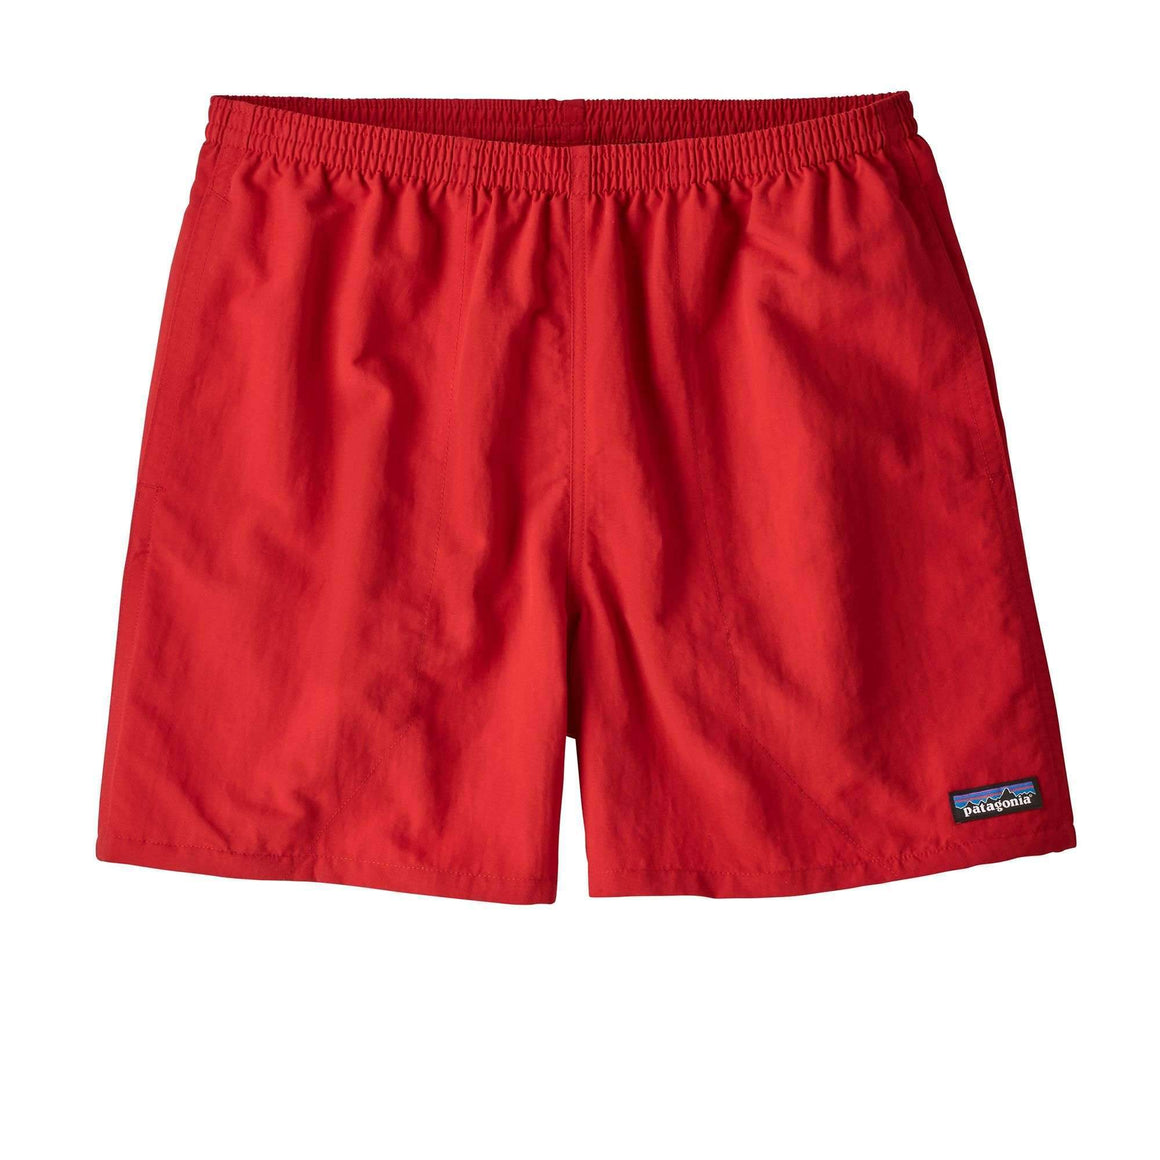 Baggies Shorts - 5 In. - Fire